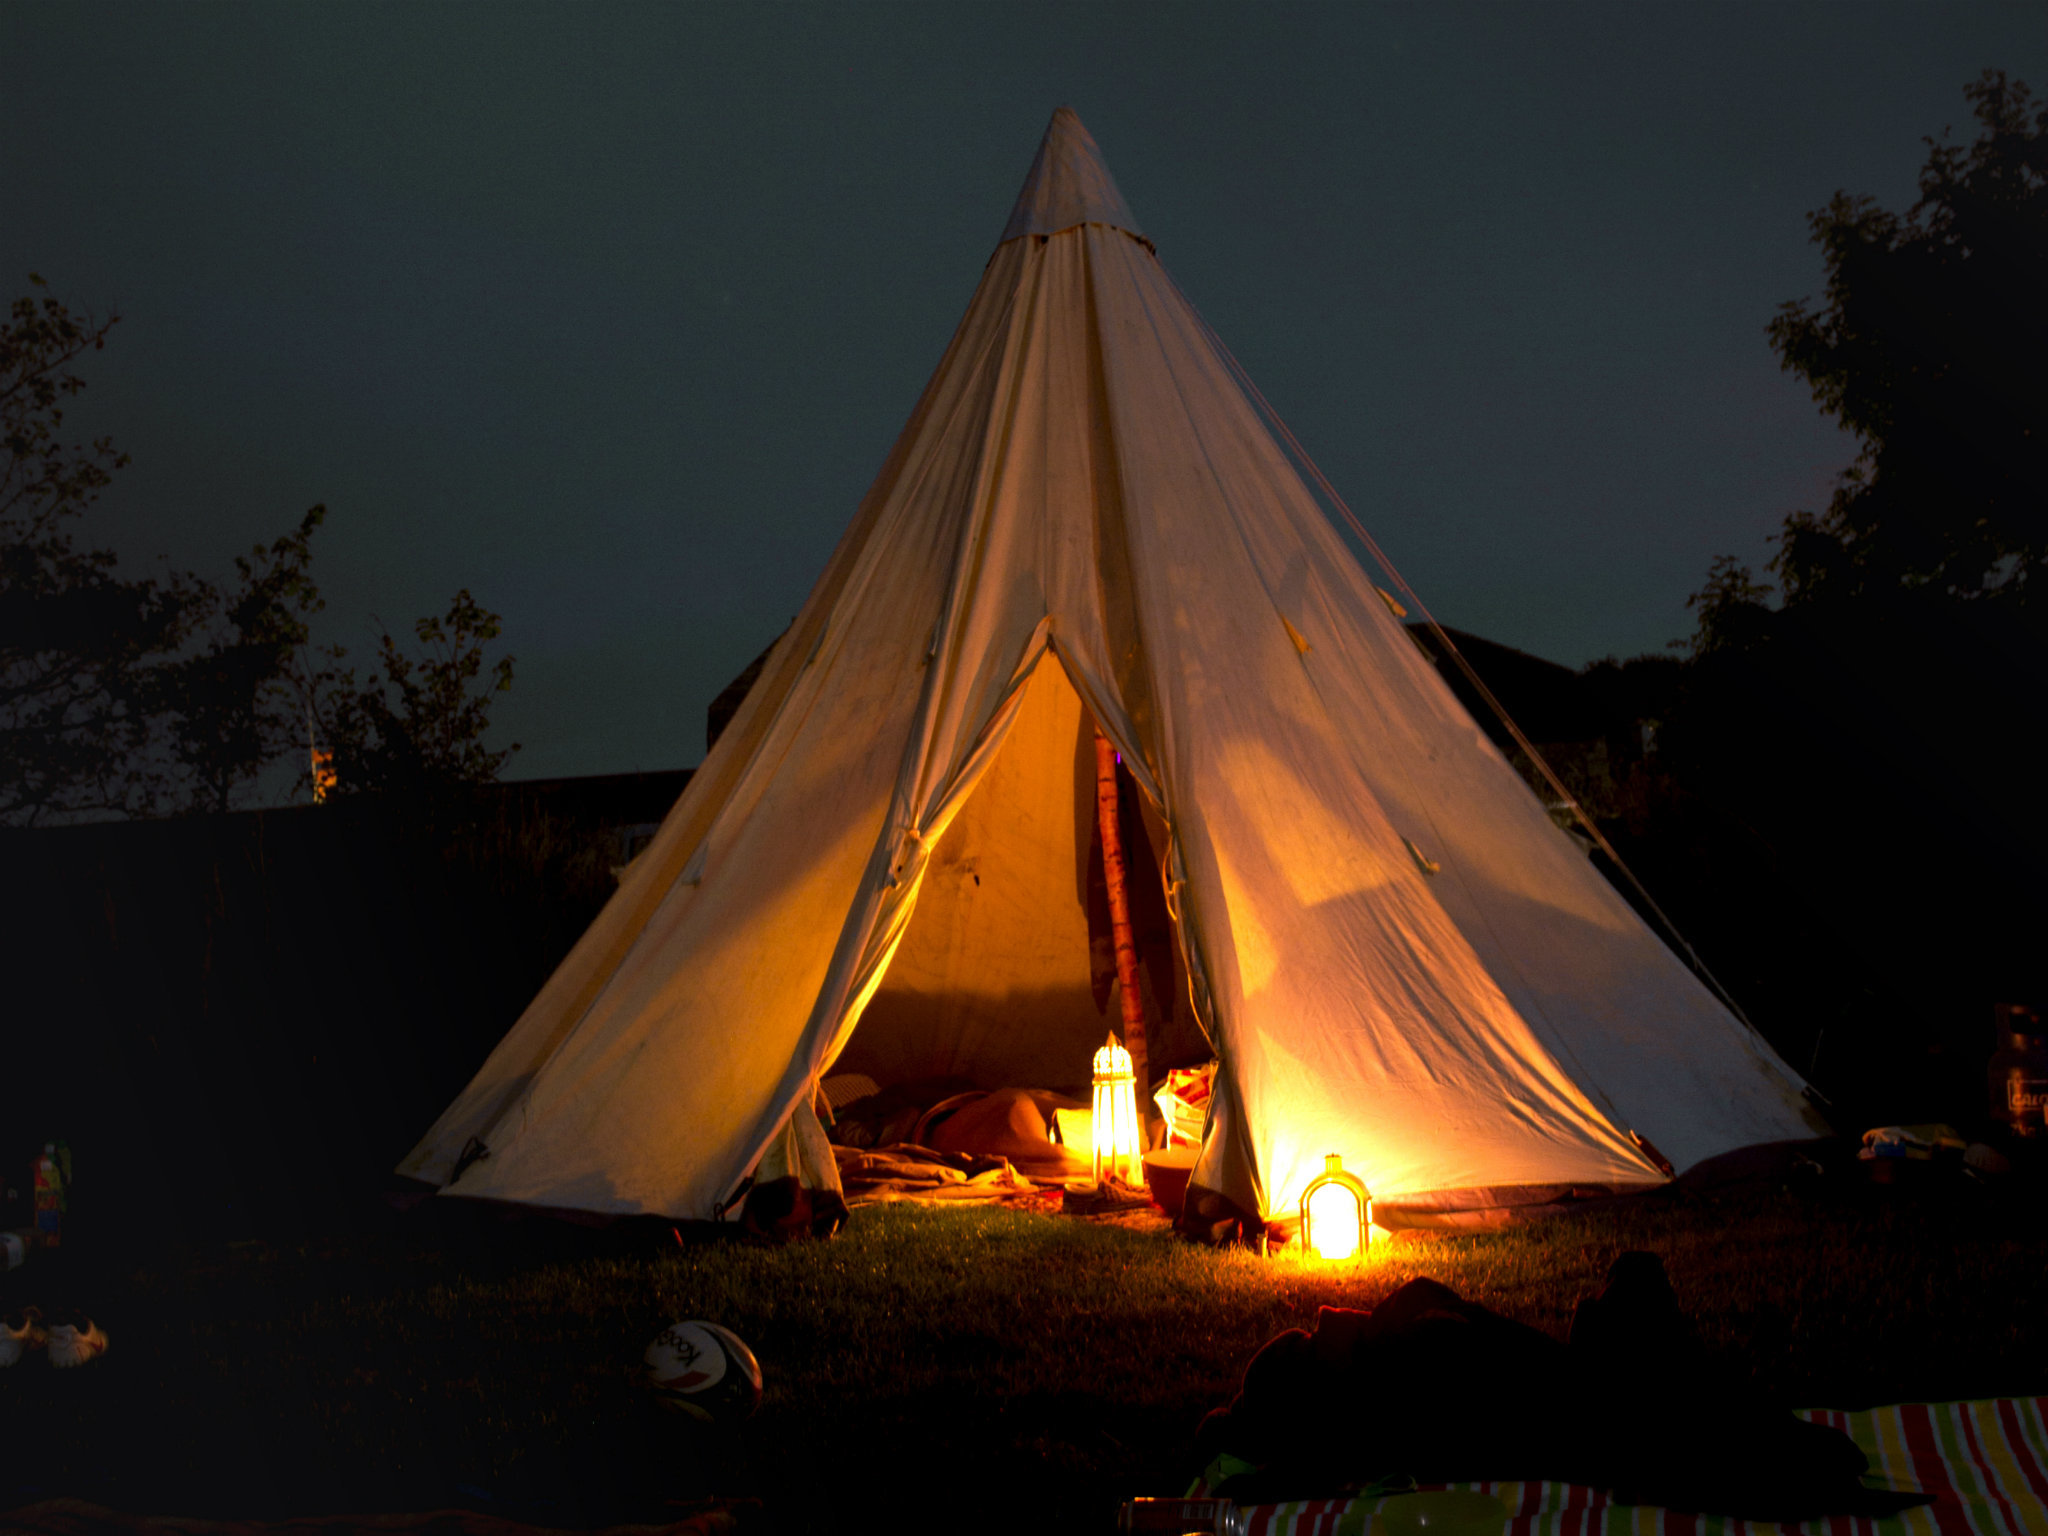 tent, camping